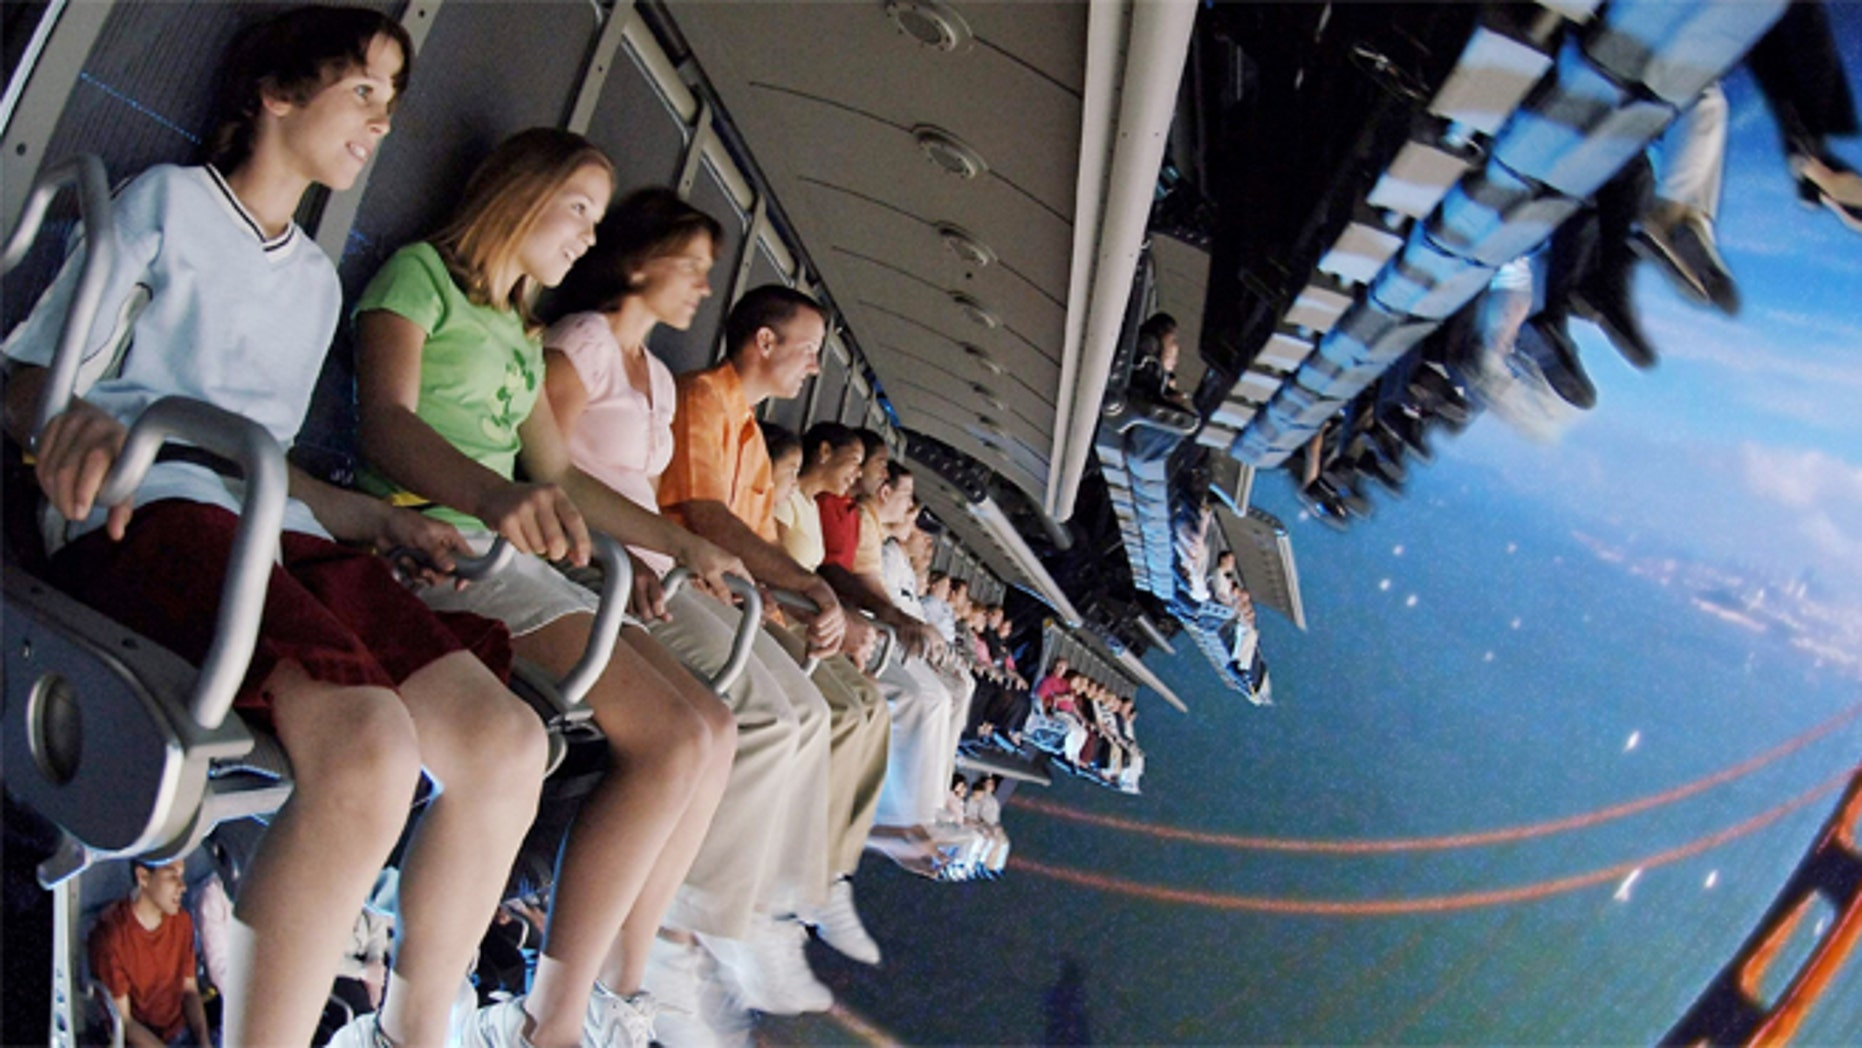 Soarin' at Epcot will get another theater which will have an upgraded projection screen.